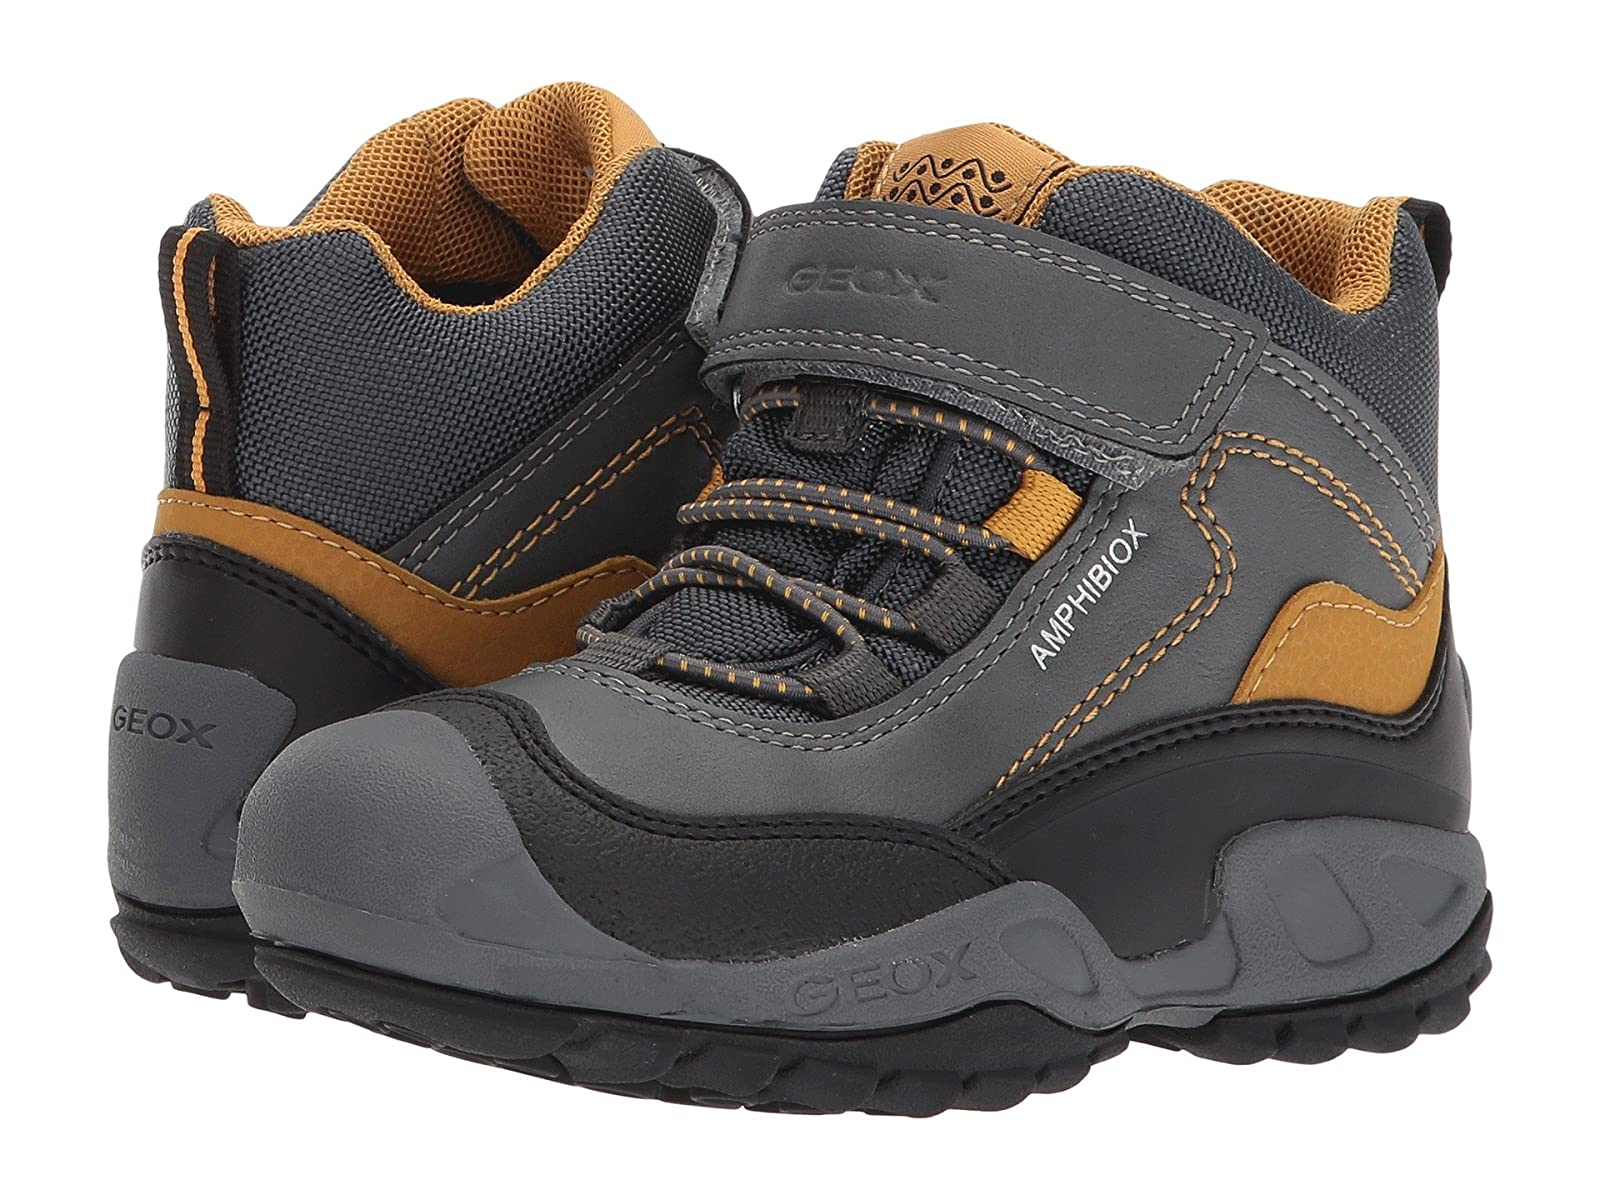 Geox Kids Jr Savage ABX 4 (Toddler/Little Kid)Atmospheric grades have affordable shoes